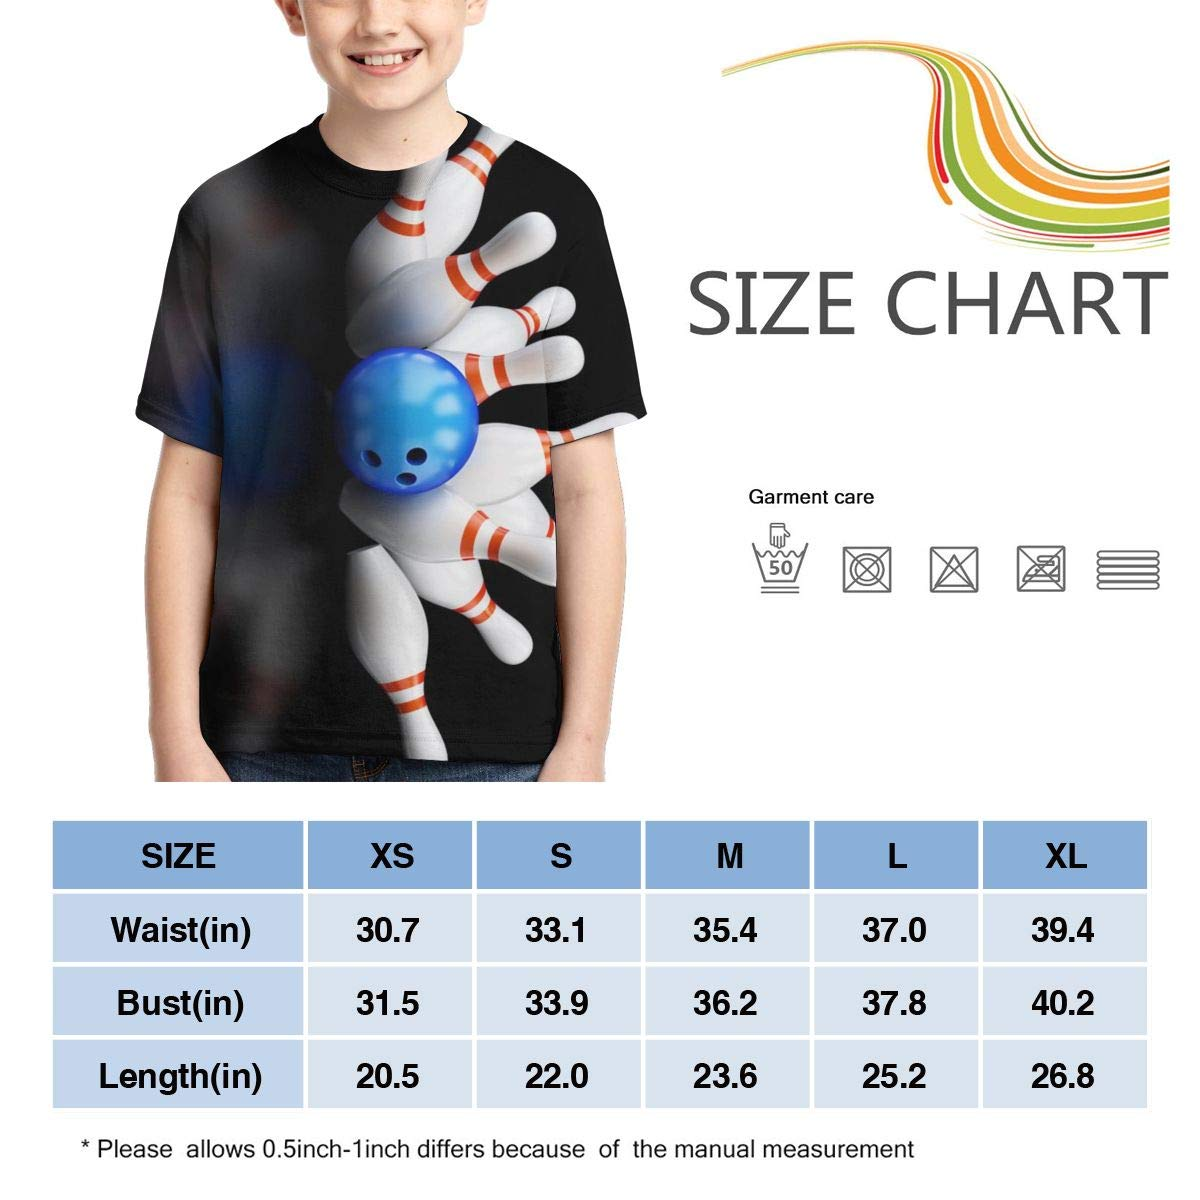 XS-XL Casual Tunic Tops Vy32jg-2 Short-Sleeve Bowlings Shirts for Boys